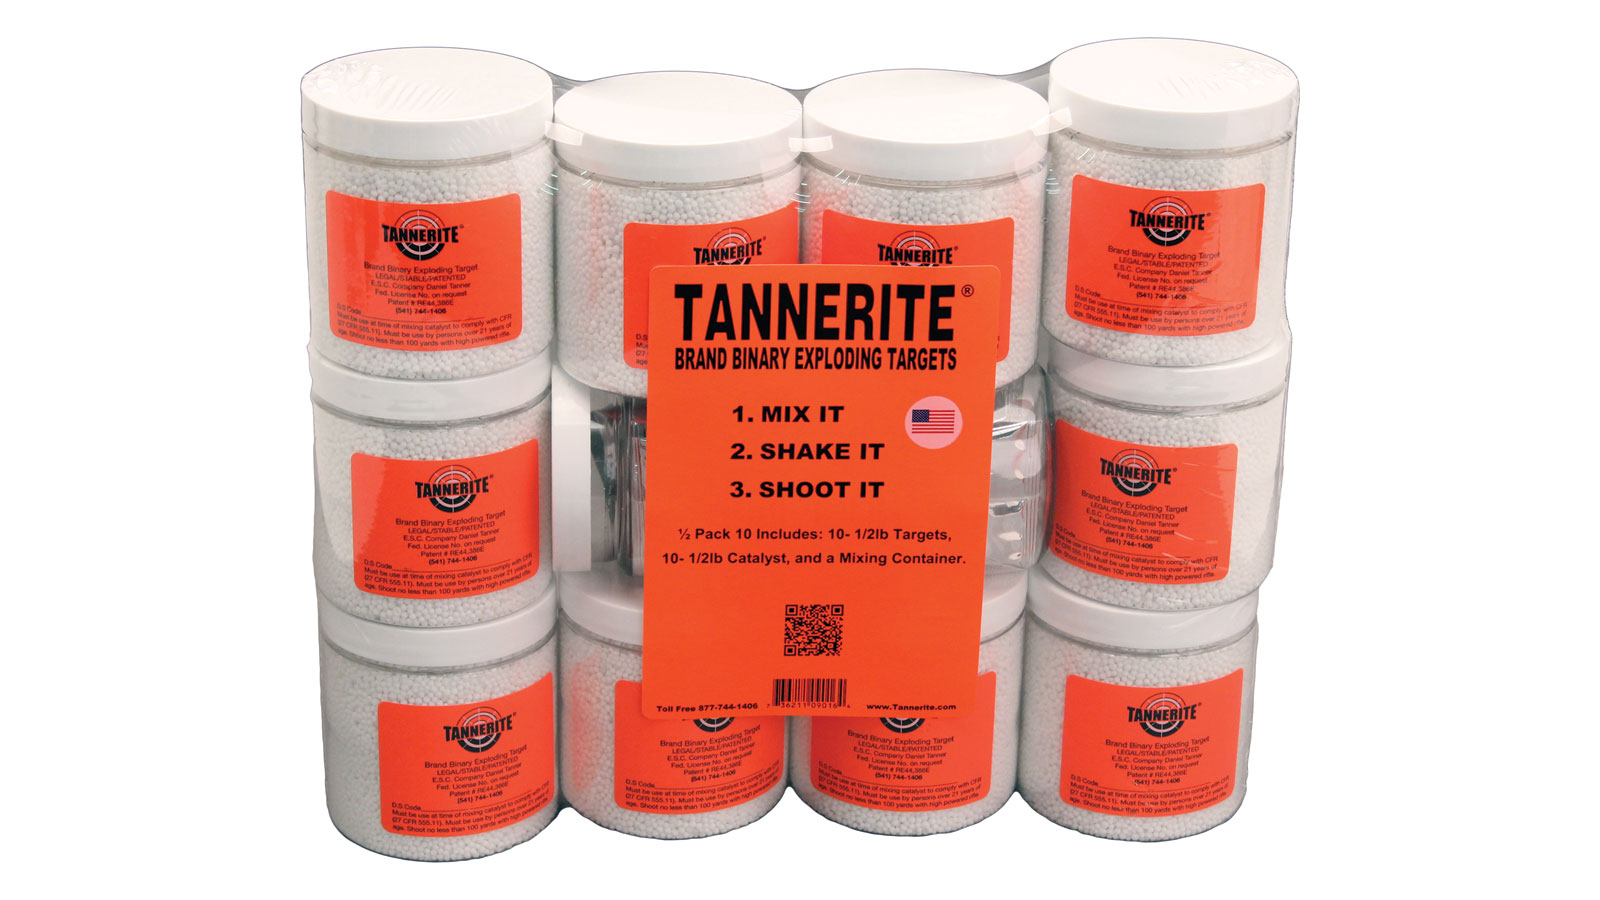 Tannerite 12PK10 Exploding Target 1 2 lbs 50 Pack